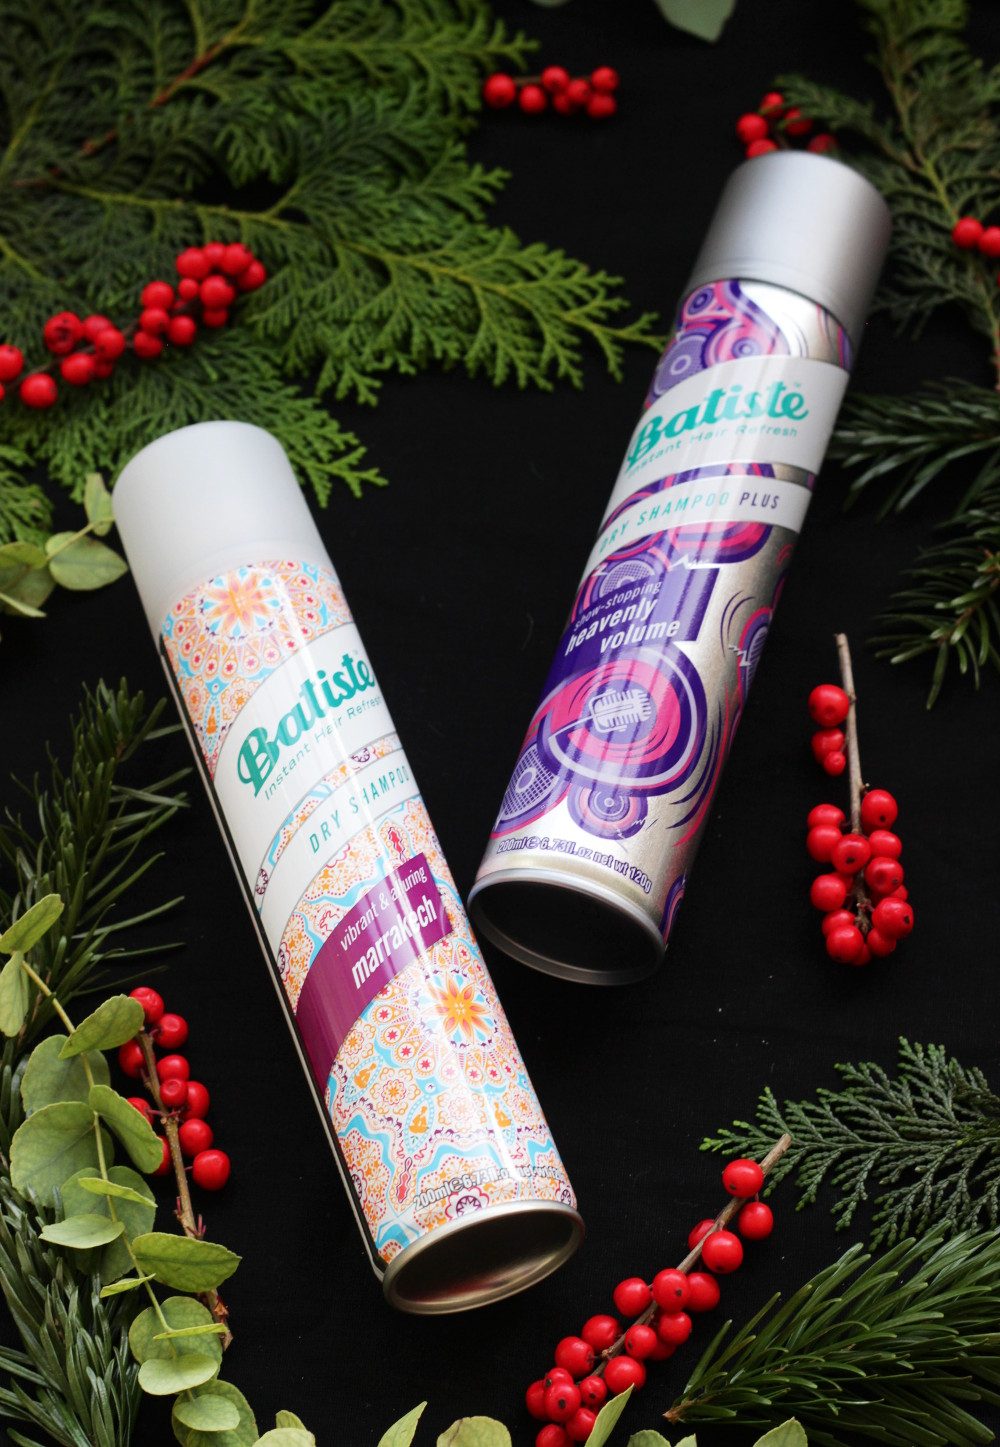 Beauty Adventskalender batiste4